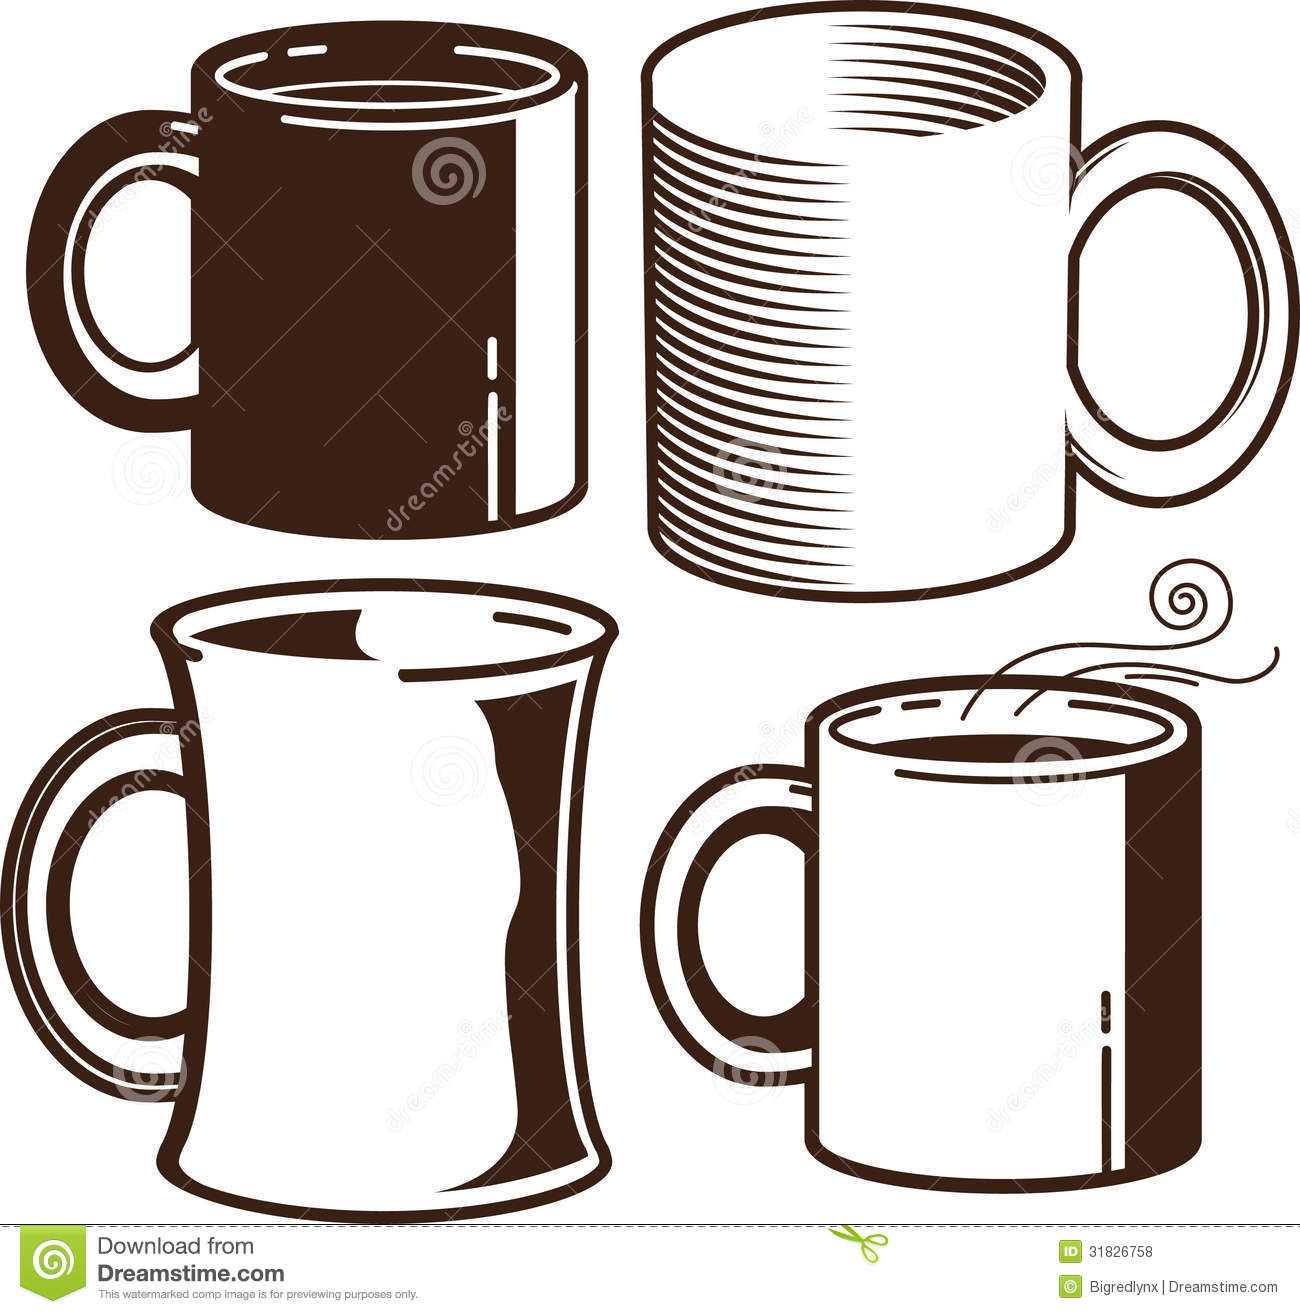 Mug clipart cup plate Clipart Coffee Coffee Download Cup